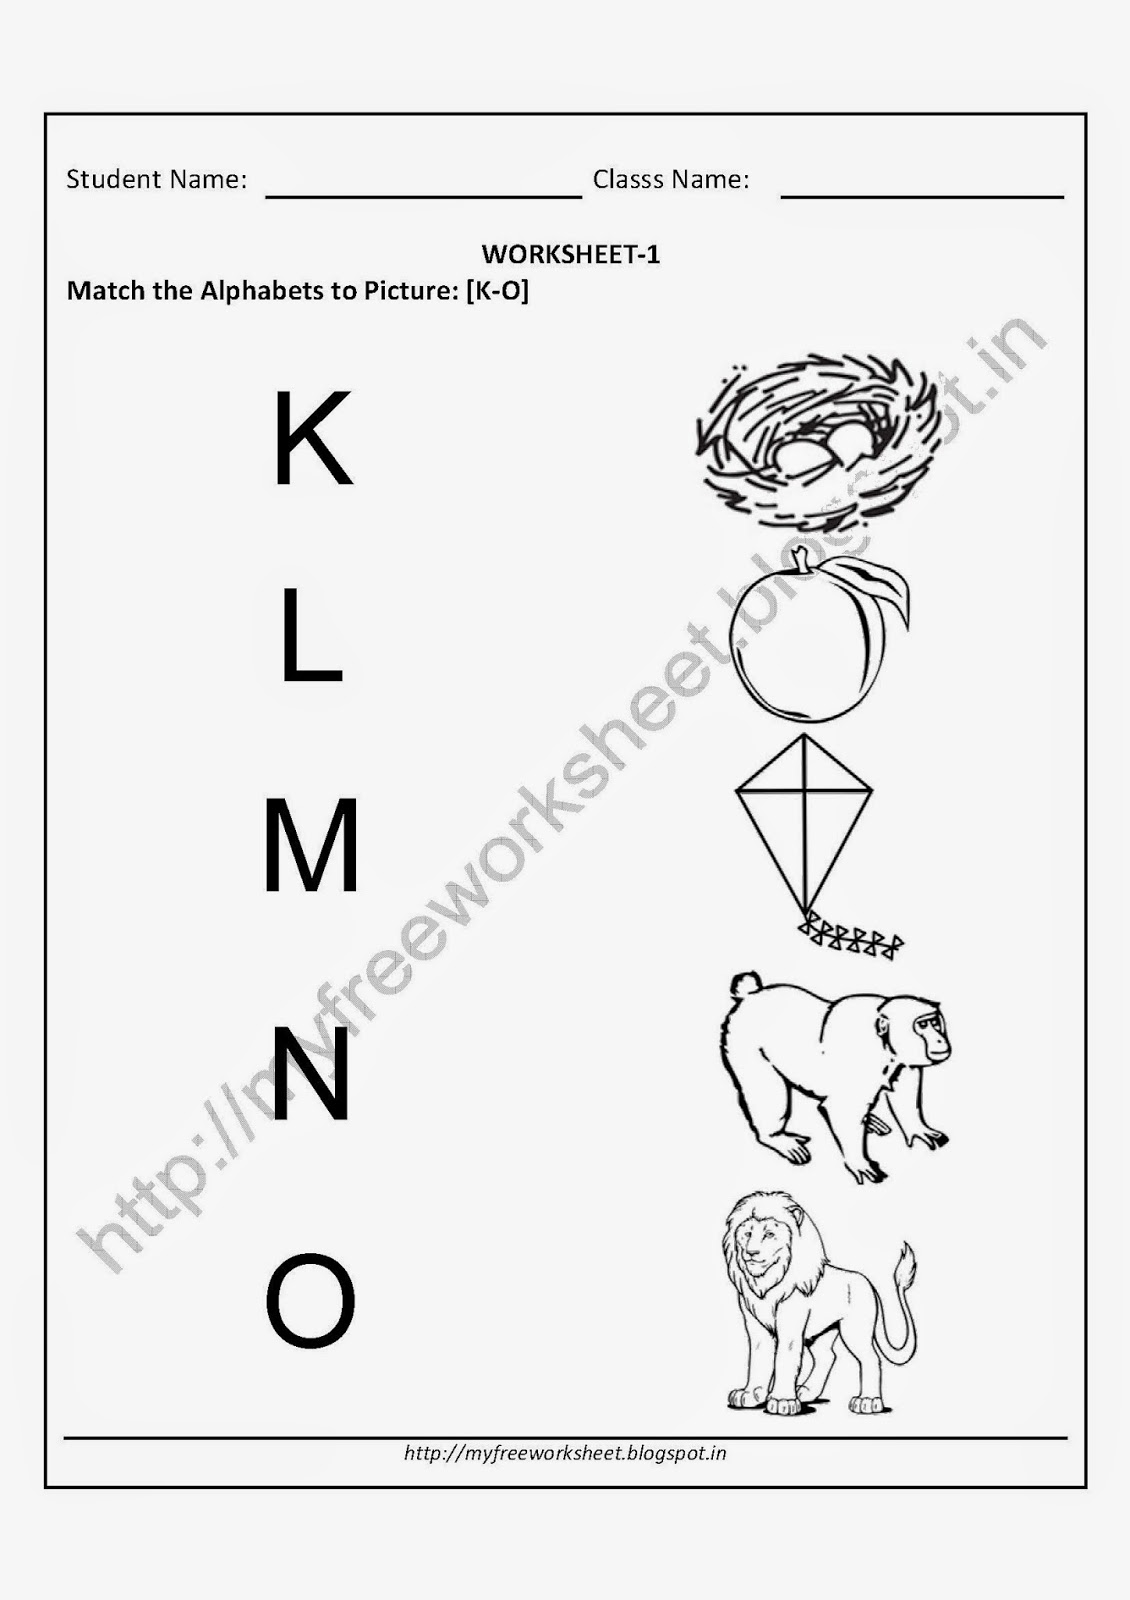 Worksheet Worksheet For Nursery Class worksheet for nursery class mikyu free english worksheets pdf 1000 images about teaching nouns math worksheet